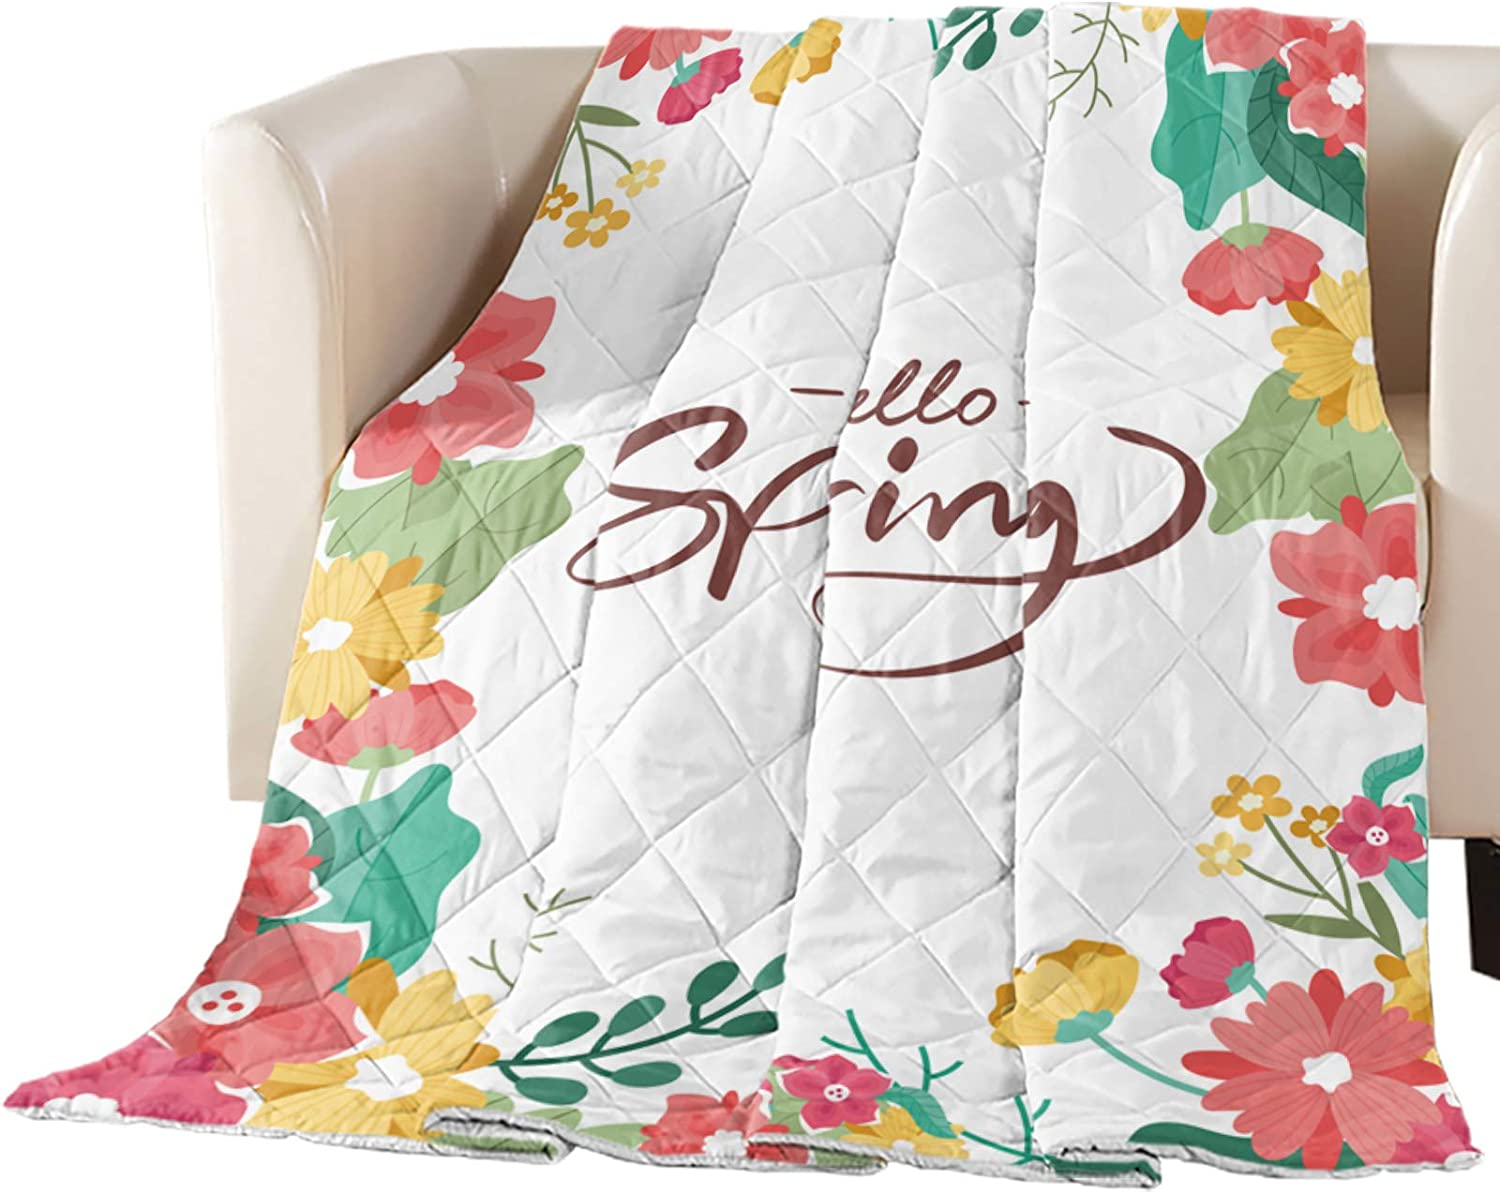 Aomike Comforter Duvet Insert Home Ranking TOP11 Hello Max 56% OFF C Quilt Gorgeous Spring